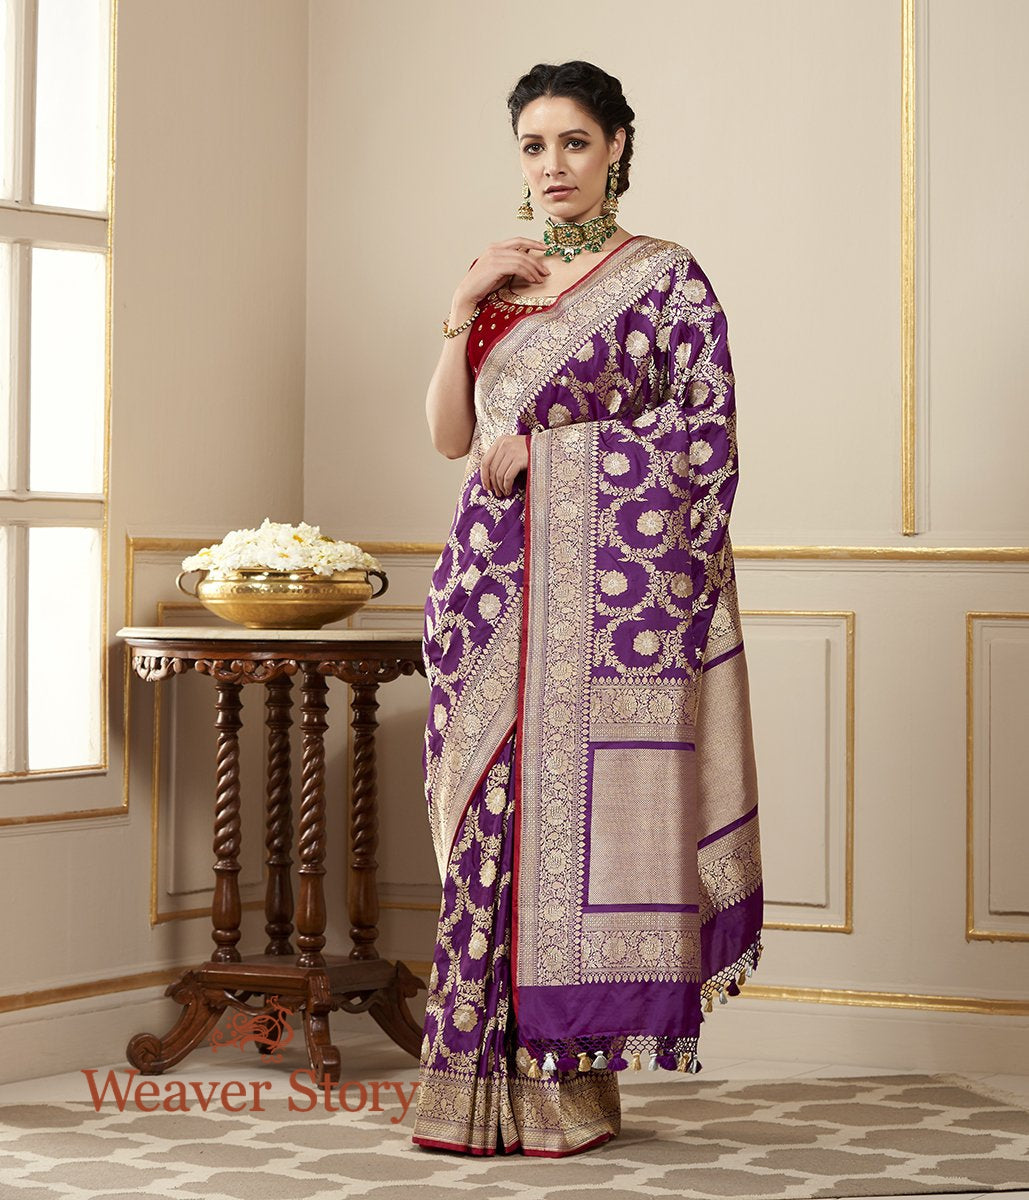 Handwoven Purple Kadhwa Jangla Saree with Sona Rupa Zari